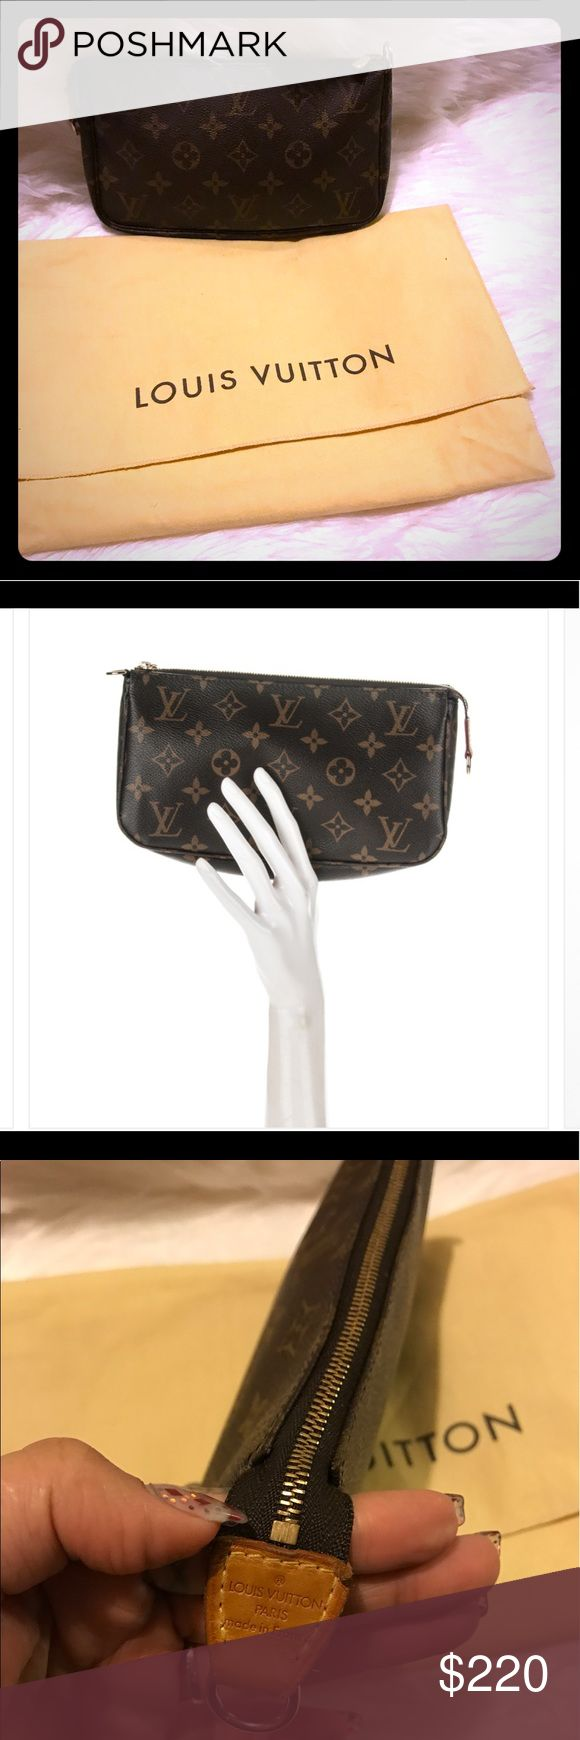 🌸💕✨Louis Vuitton pochette✨ ✨🌸beautiful 💯authentic Louis Vuitton monogram Pochette. Made in France date code Vi0021 🌸in good preowned conditions. With honey patina color on leather pice. Dos not come with the leather strap just the Pochette. This beauty comes with dust bag. Sorry no trades. 😊 Louis Vuitton Bags Cosmetic Bags & Cases